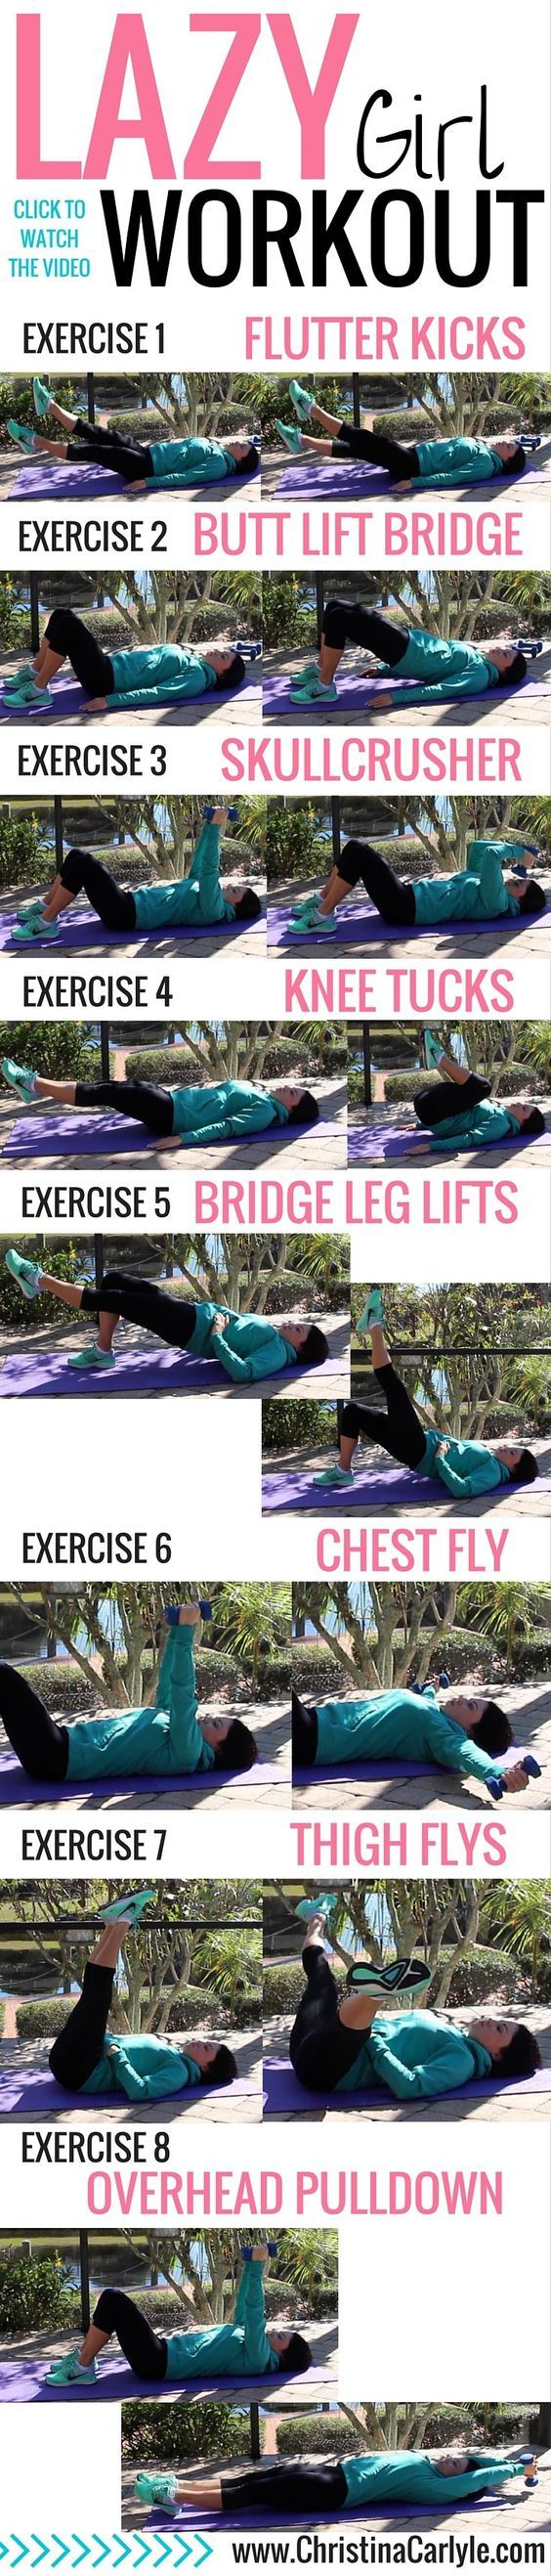 Quick easy workout for when you are short on time. Grab some weights and lets do the Lazy Girl workout